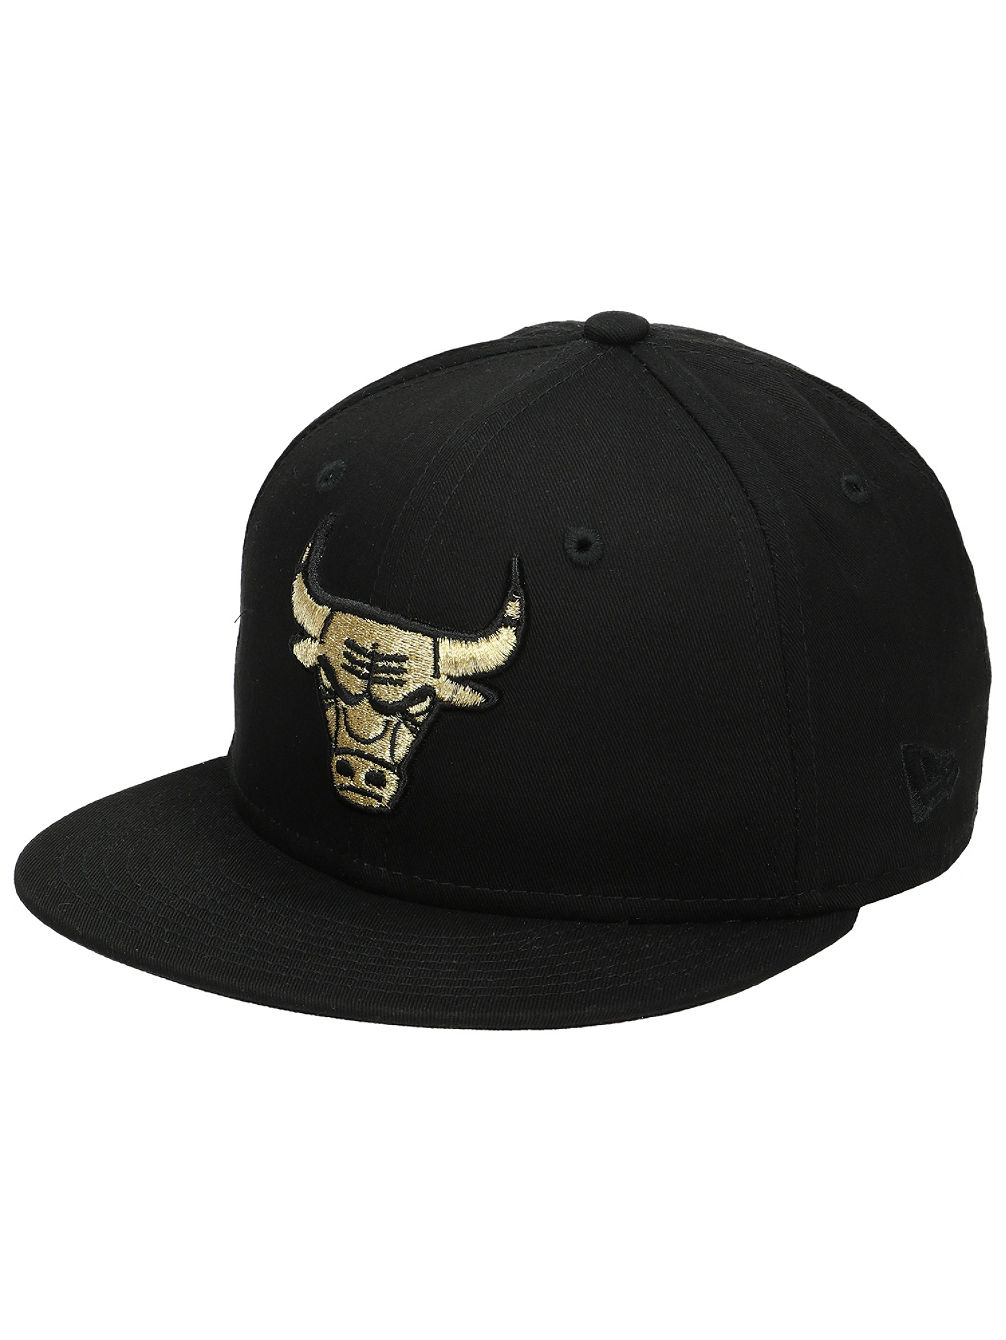 Kids Golden 950 Jr Cap Youth